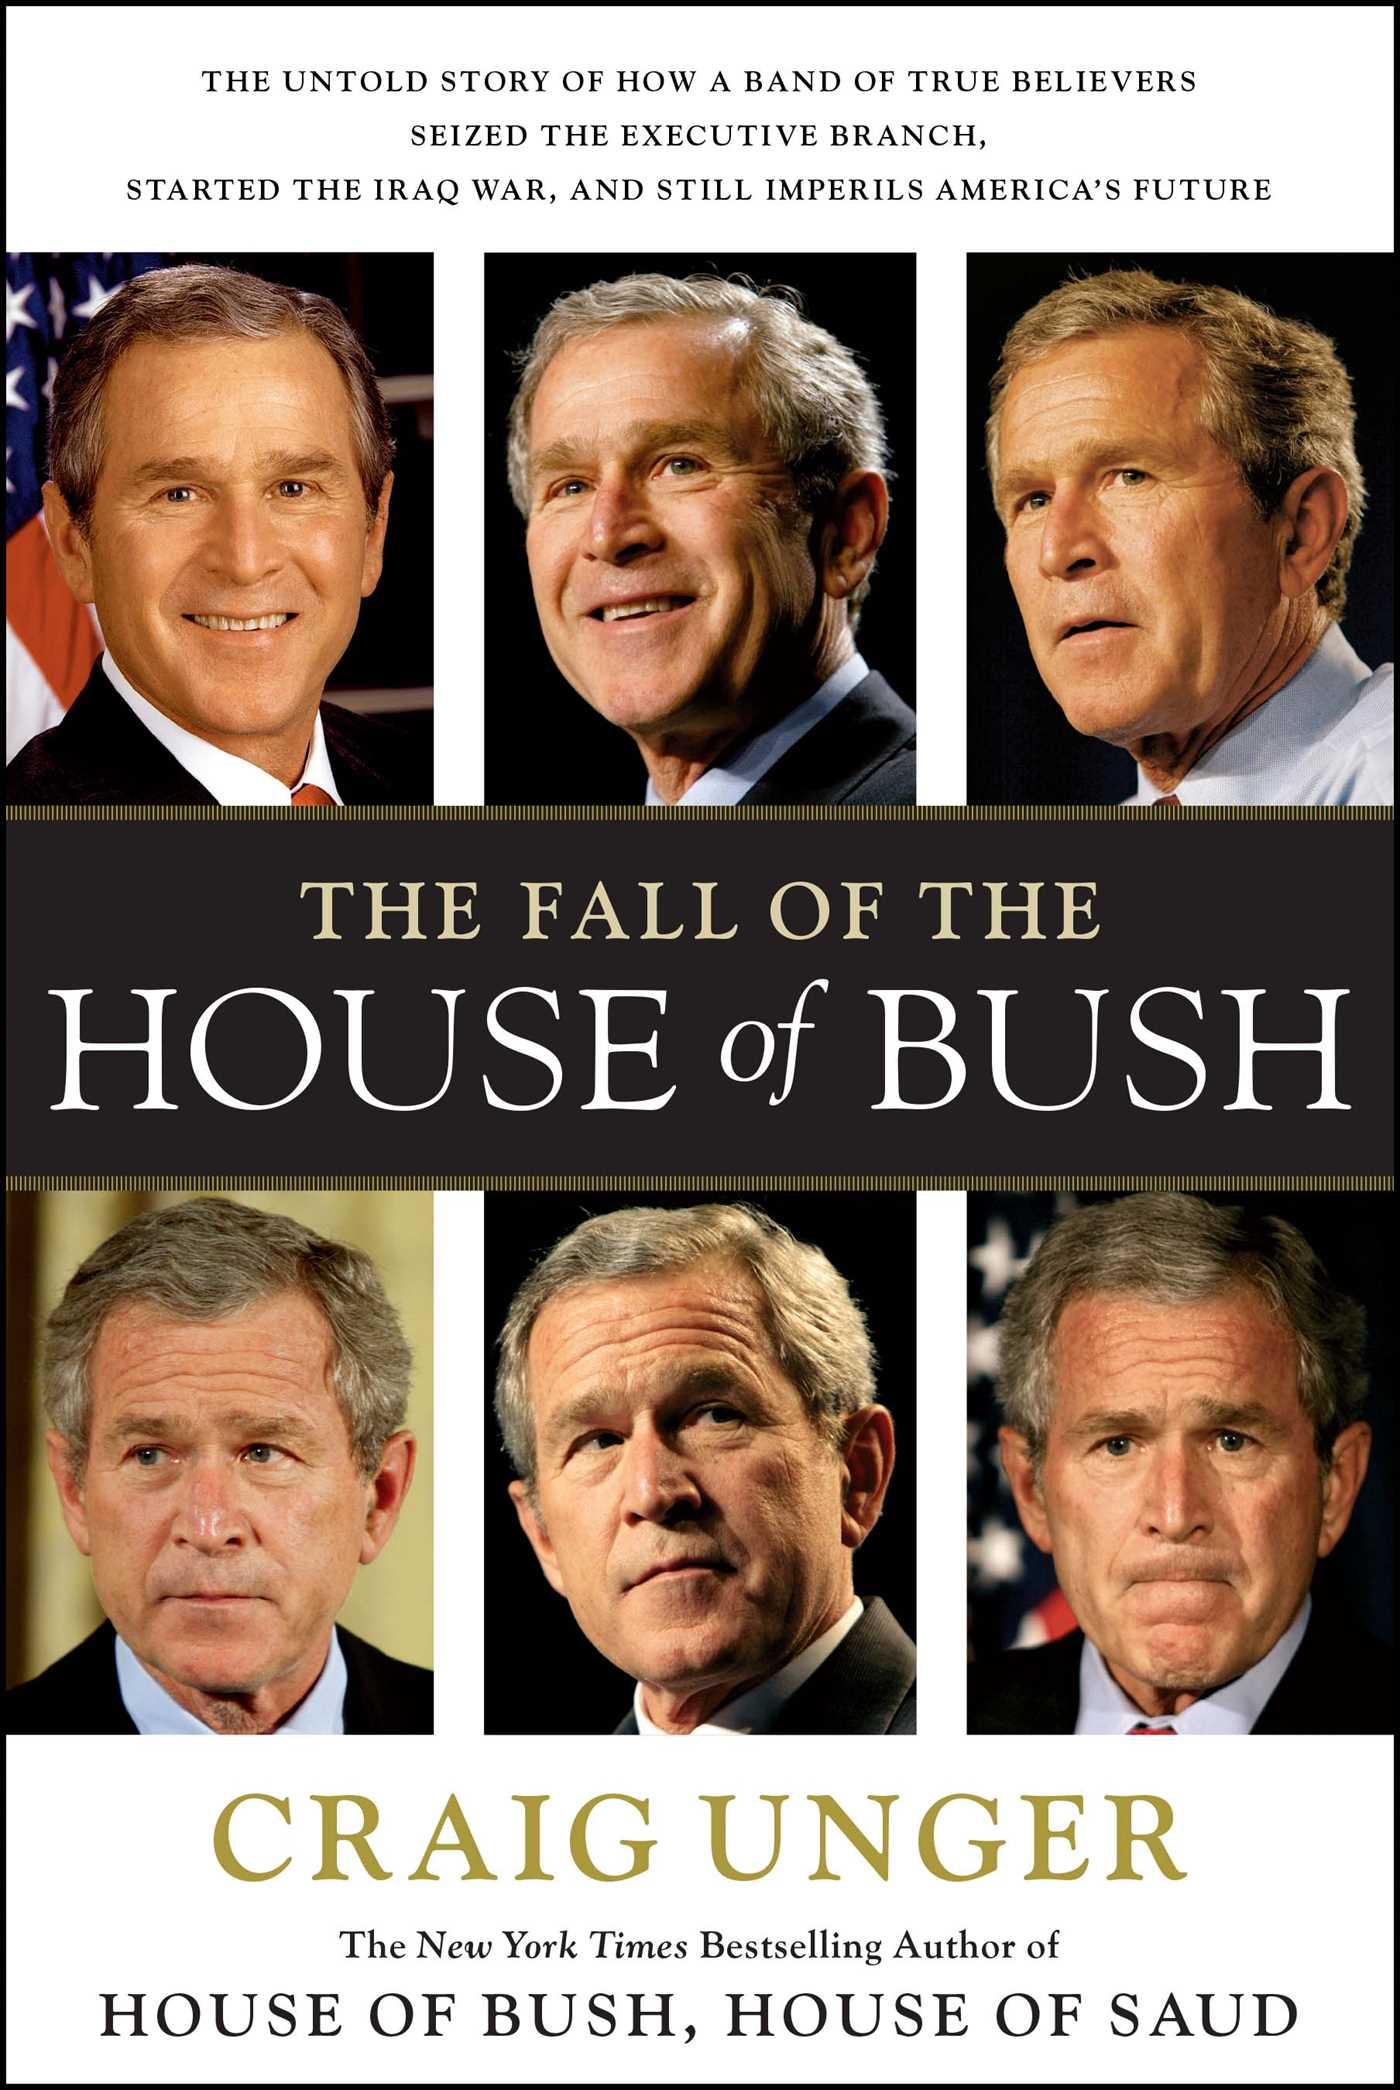 The fall of the house of bush 9781451655056 hr